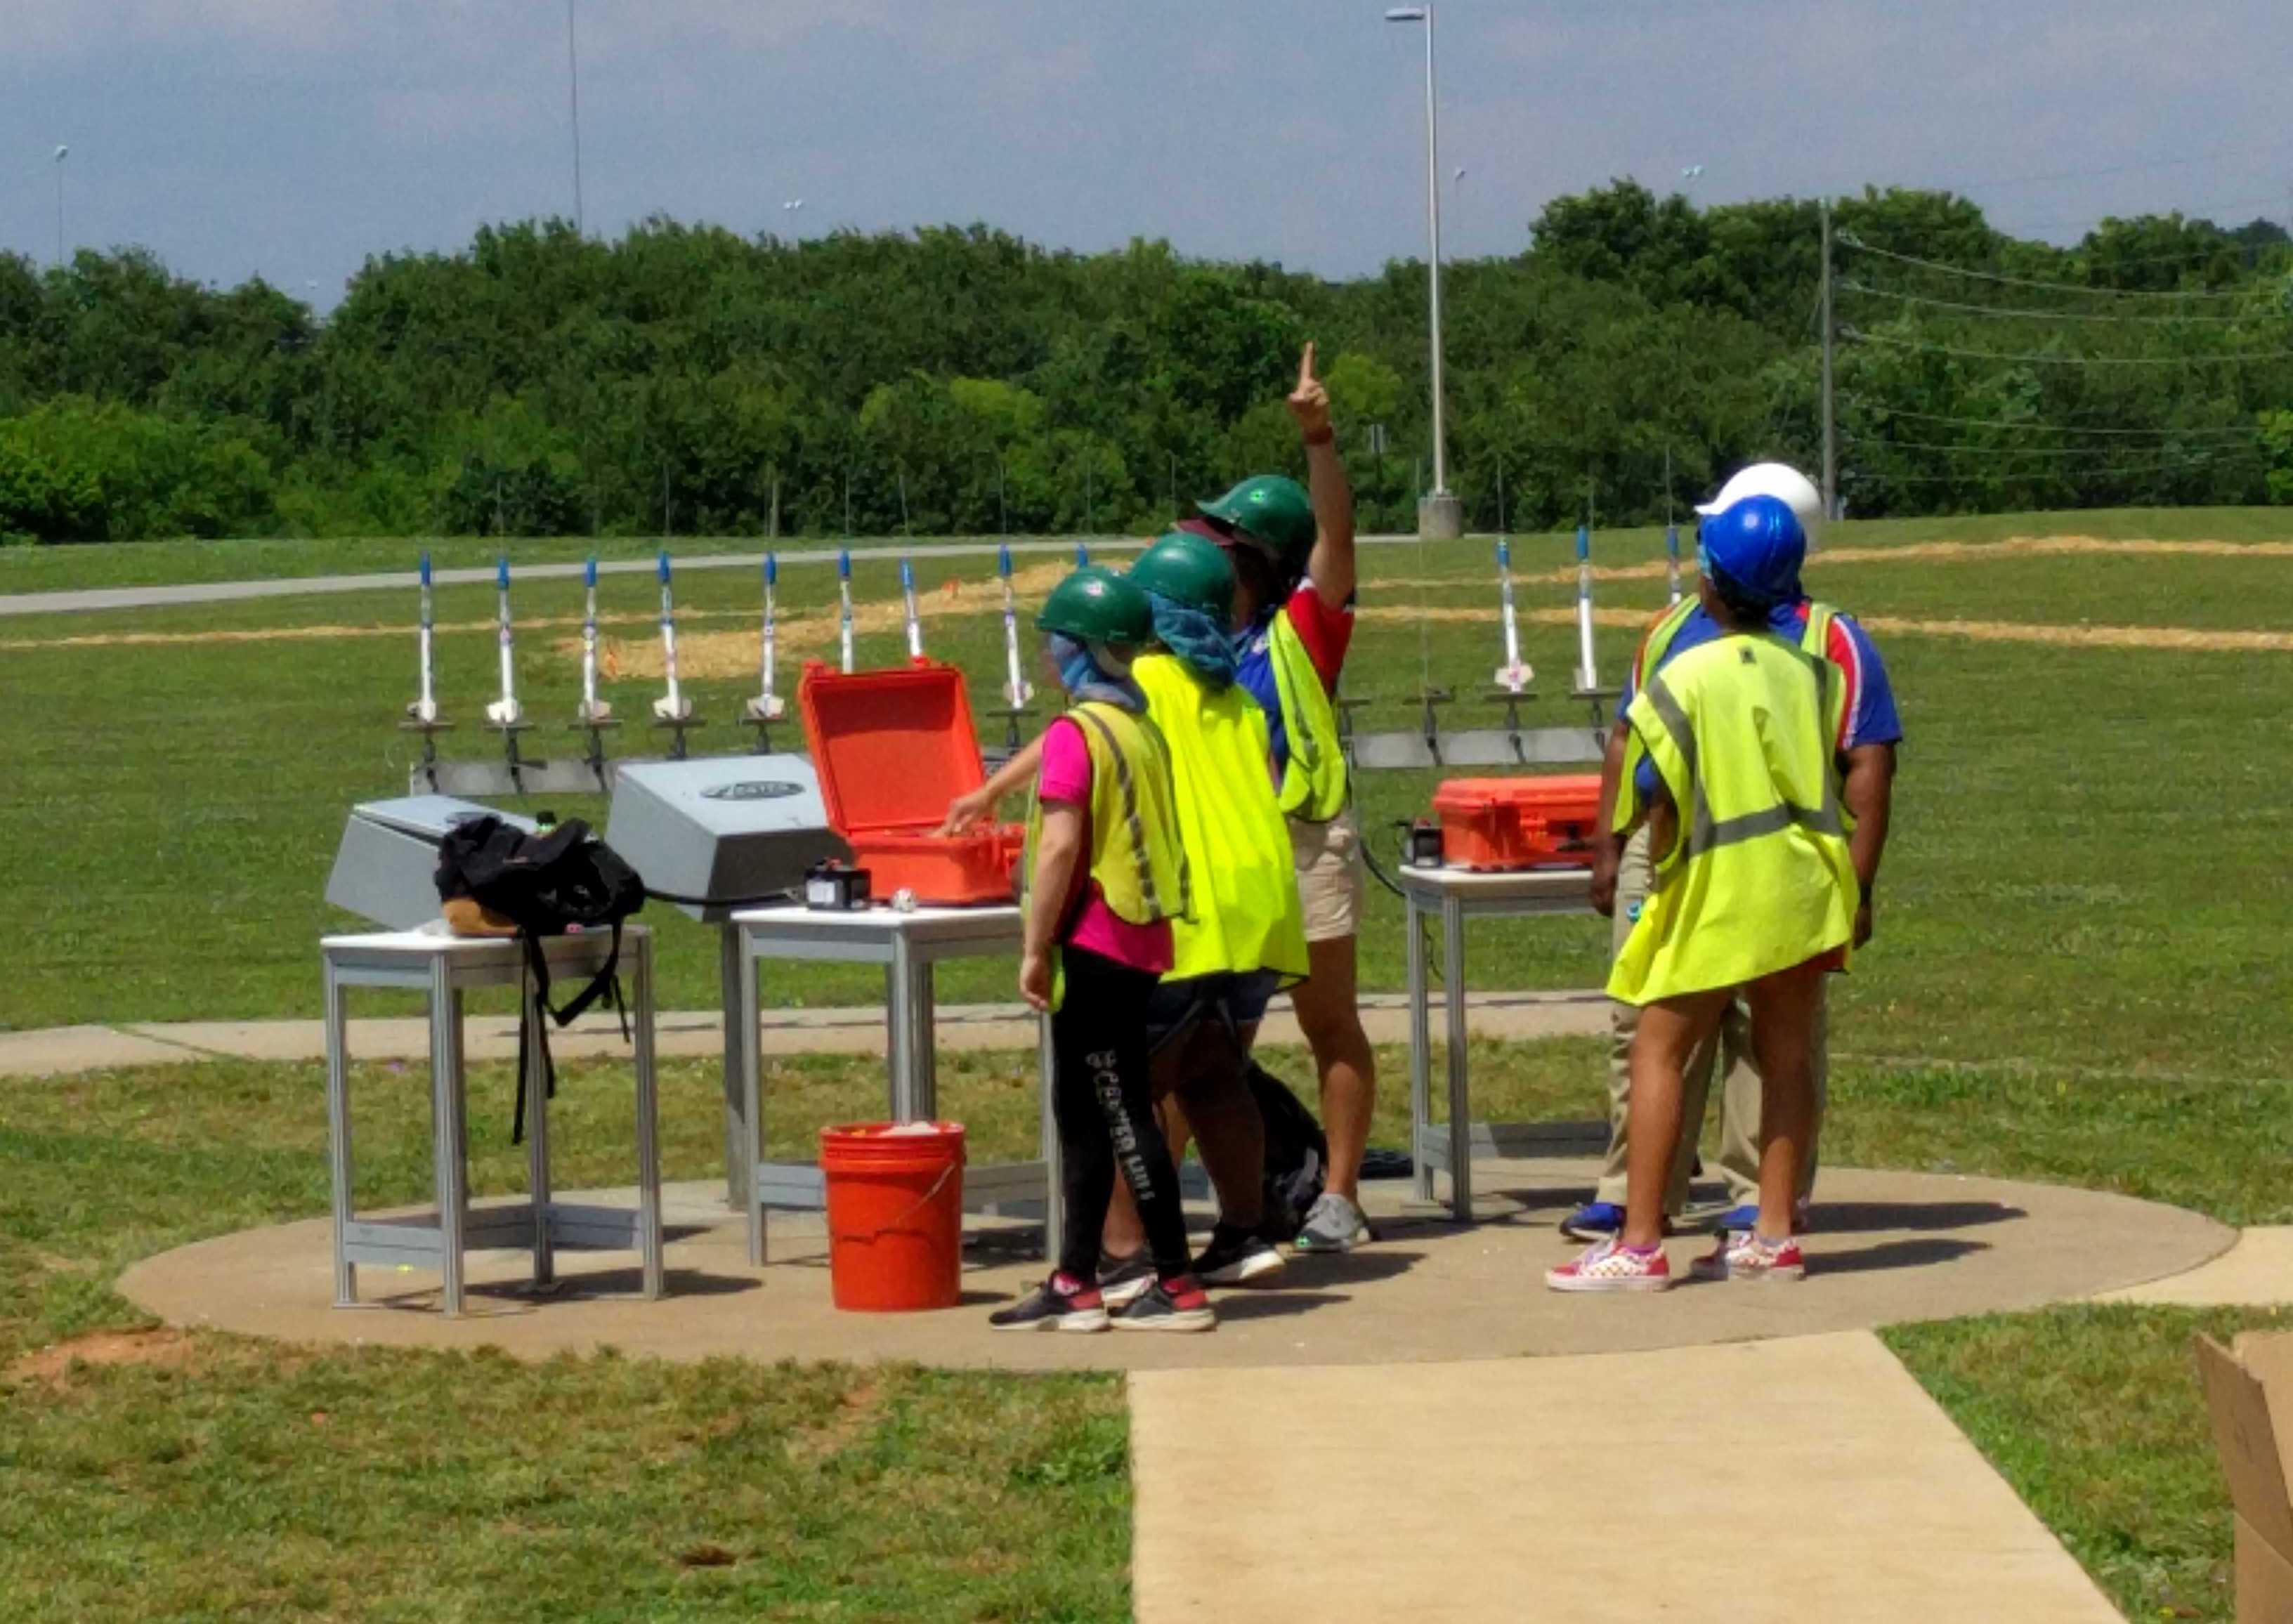 five kids in hard hats and safety vests stand in a grassy field with a row of model rockets